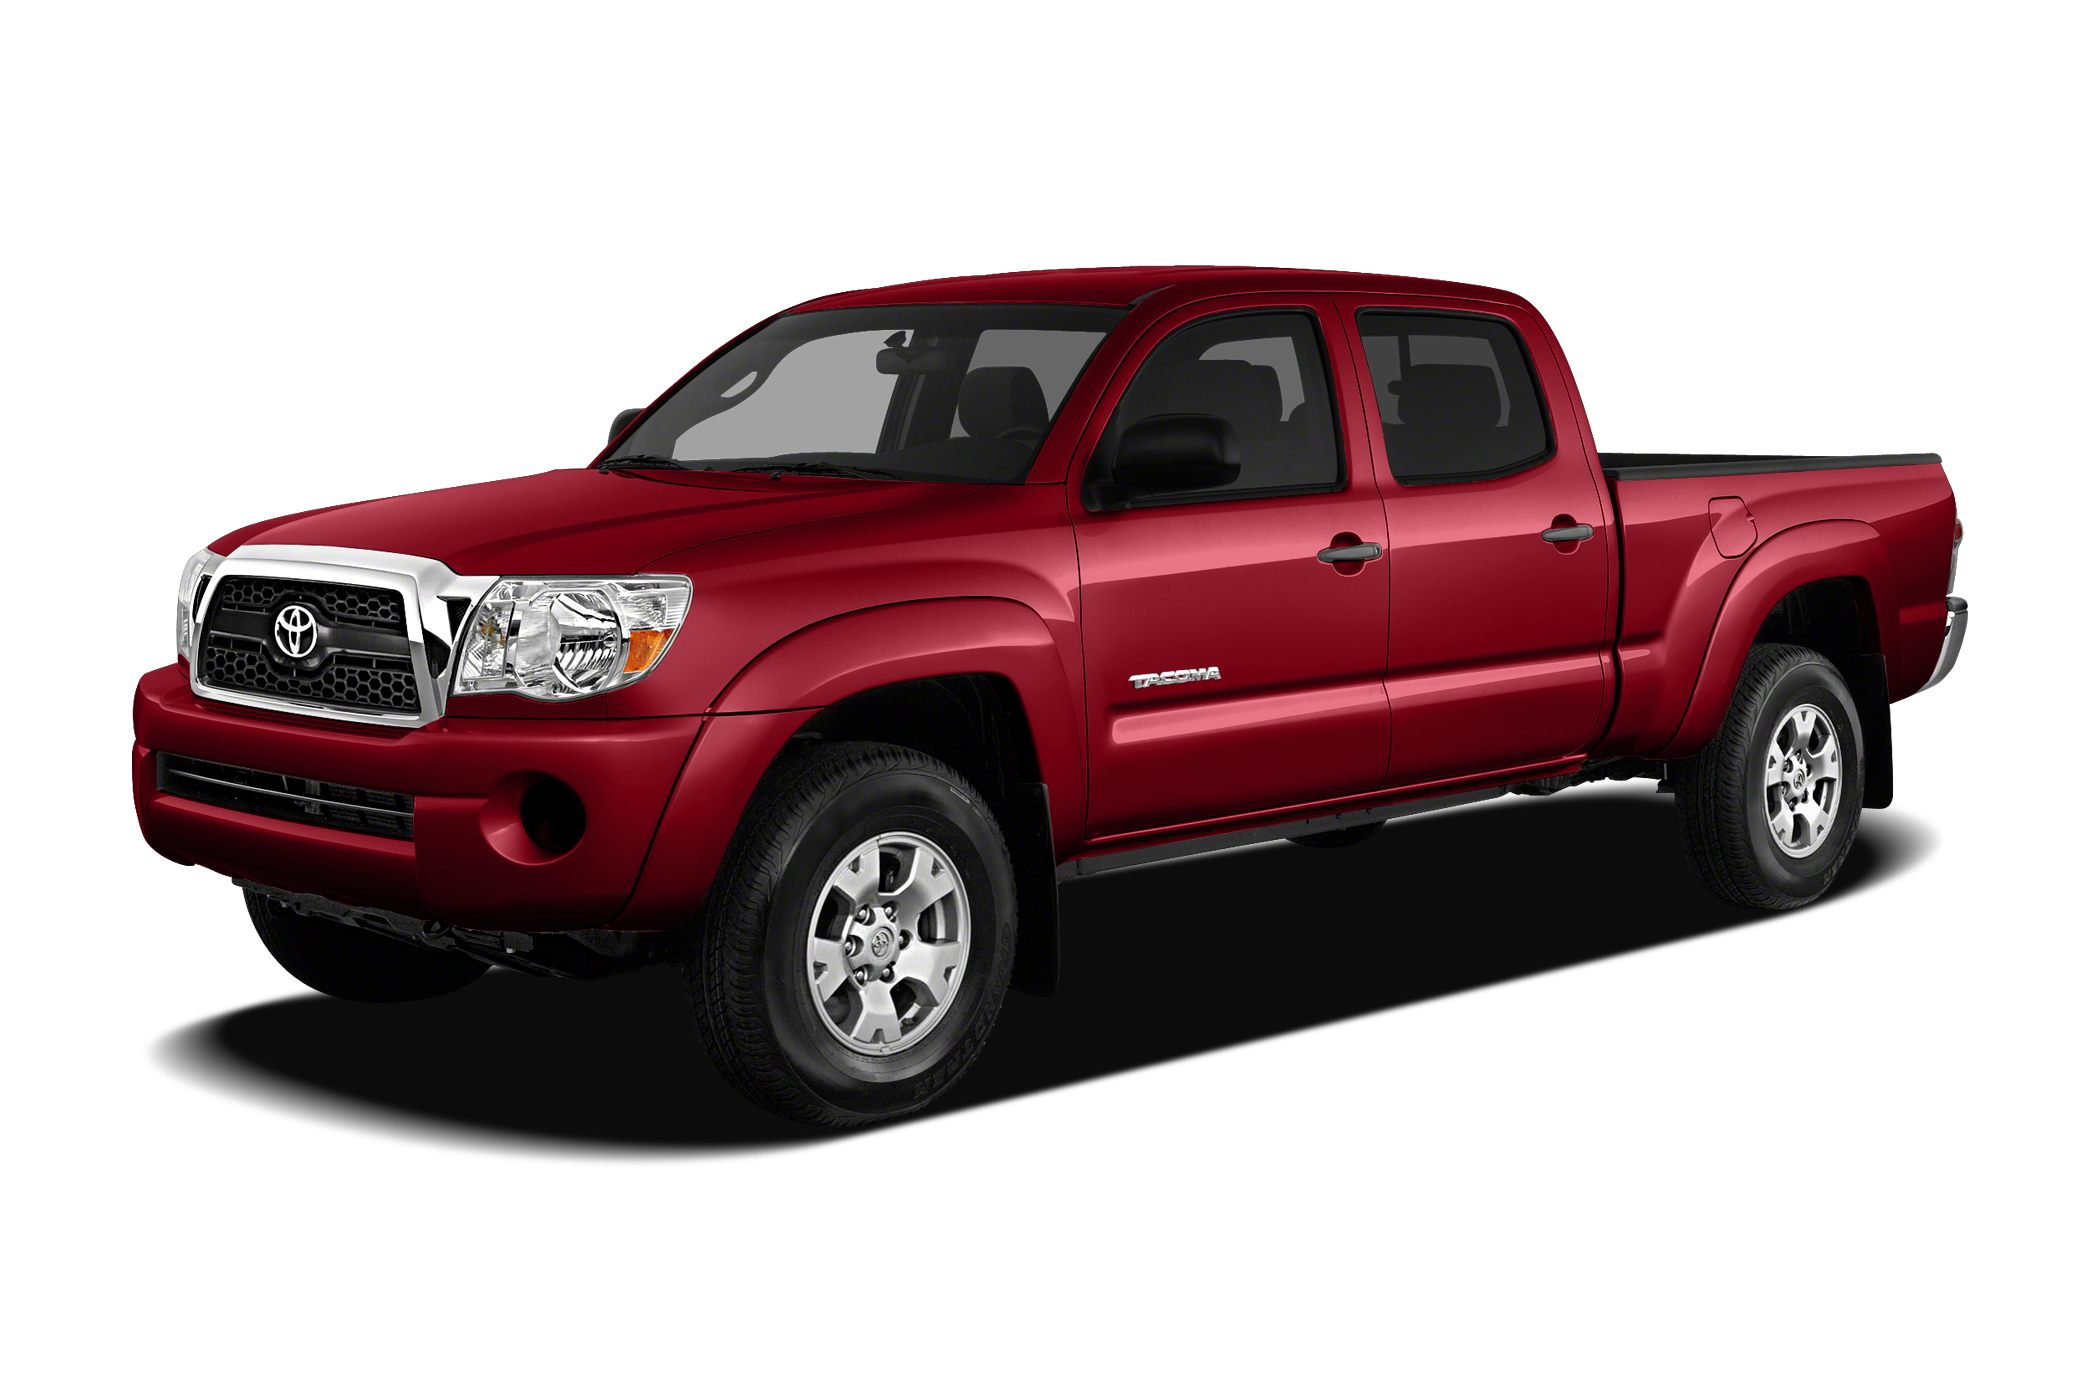 2011 Toyota Ta a PreRunner V6 4x2 Double Cab 140 6 in WB Specs